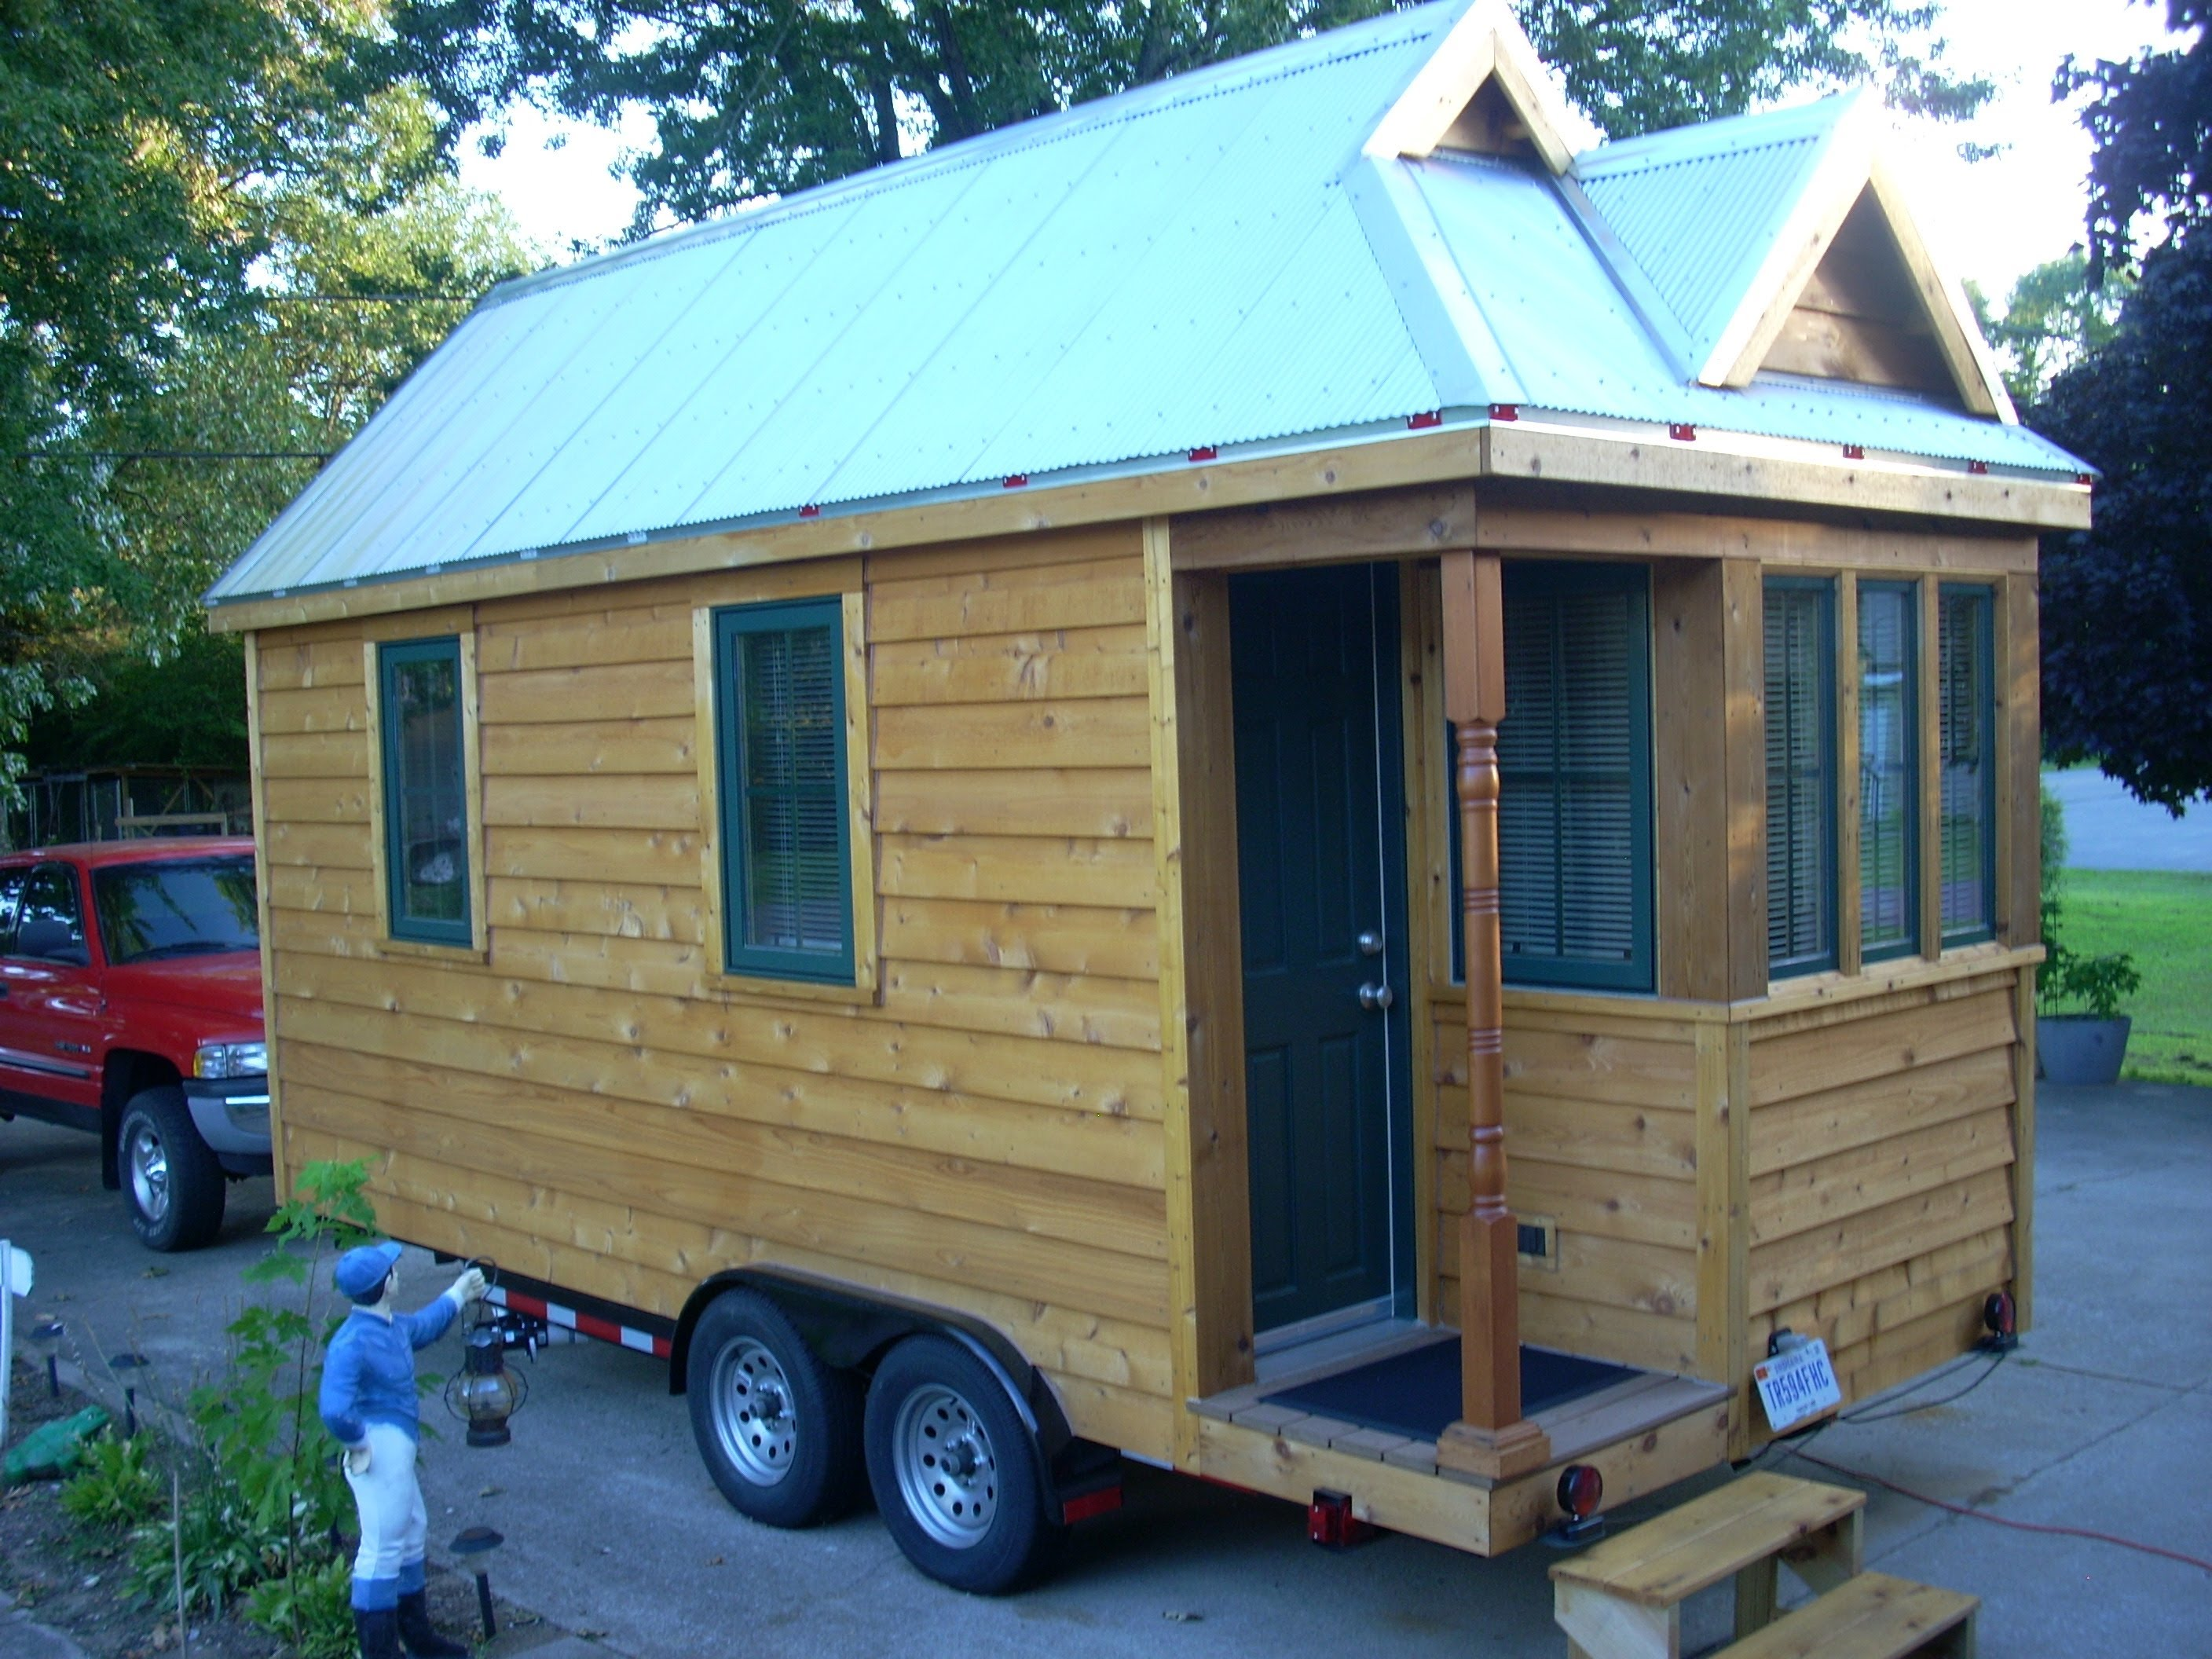 How To Travel Comfortably And Relax With Mobile Home For